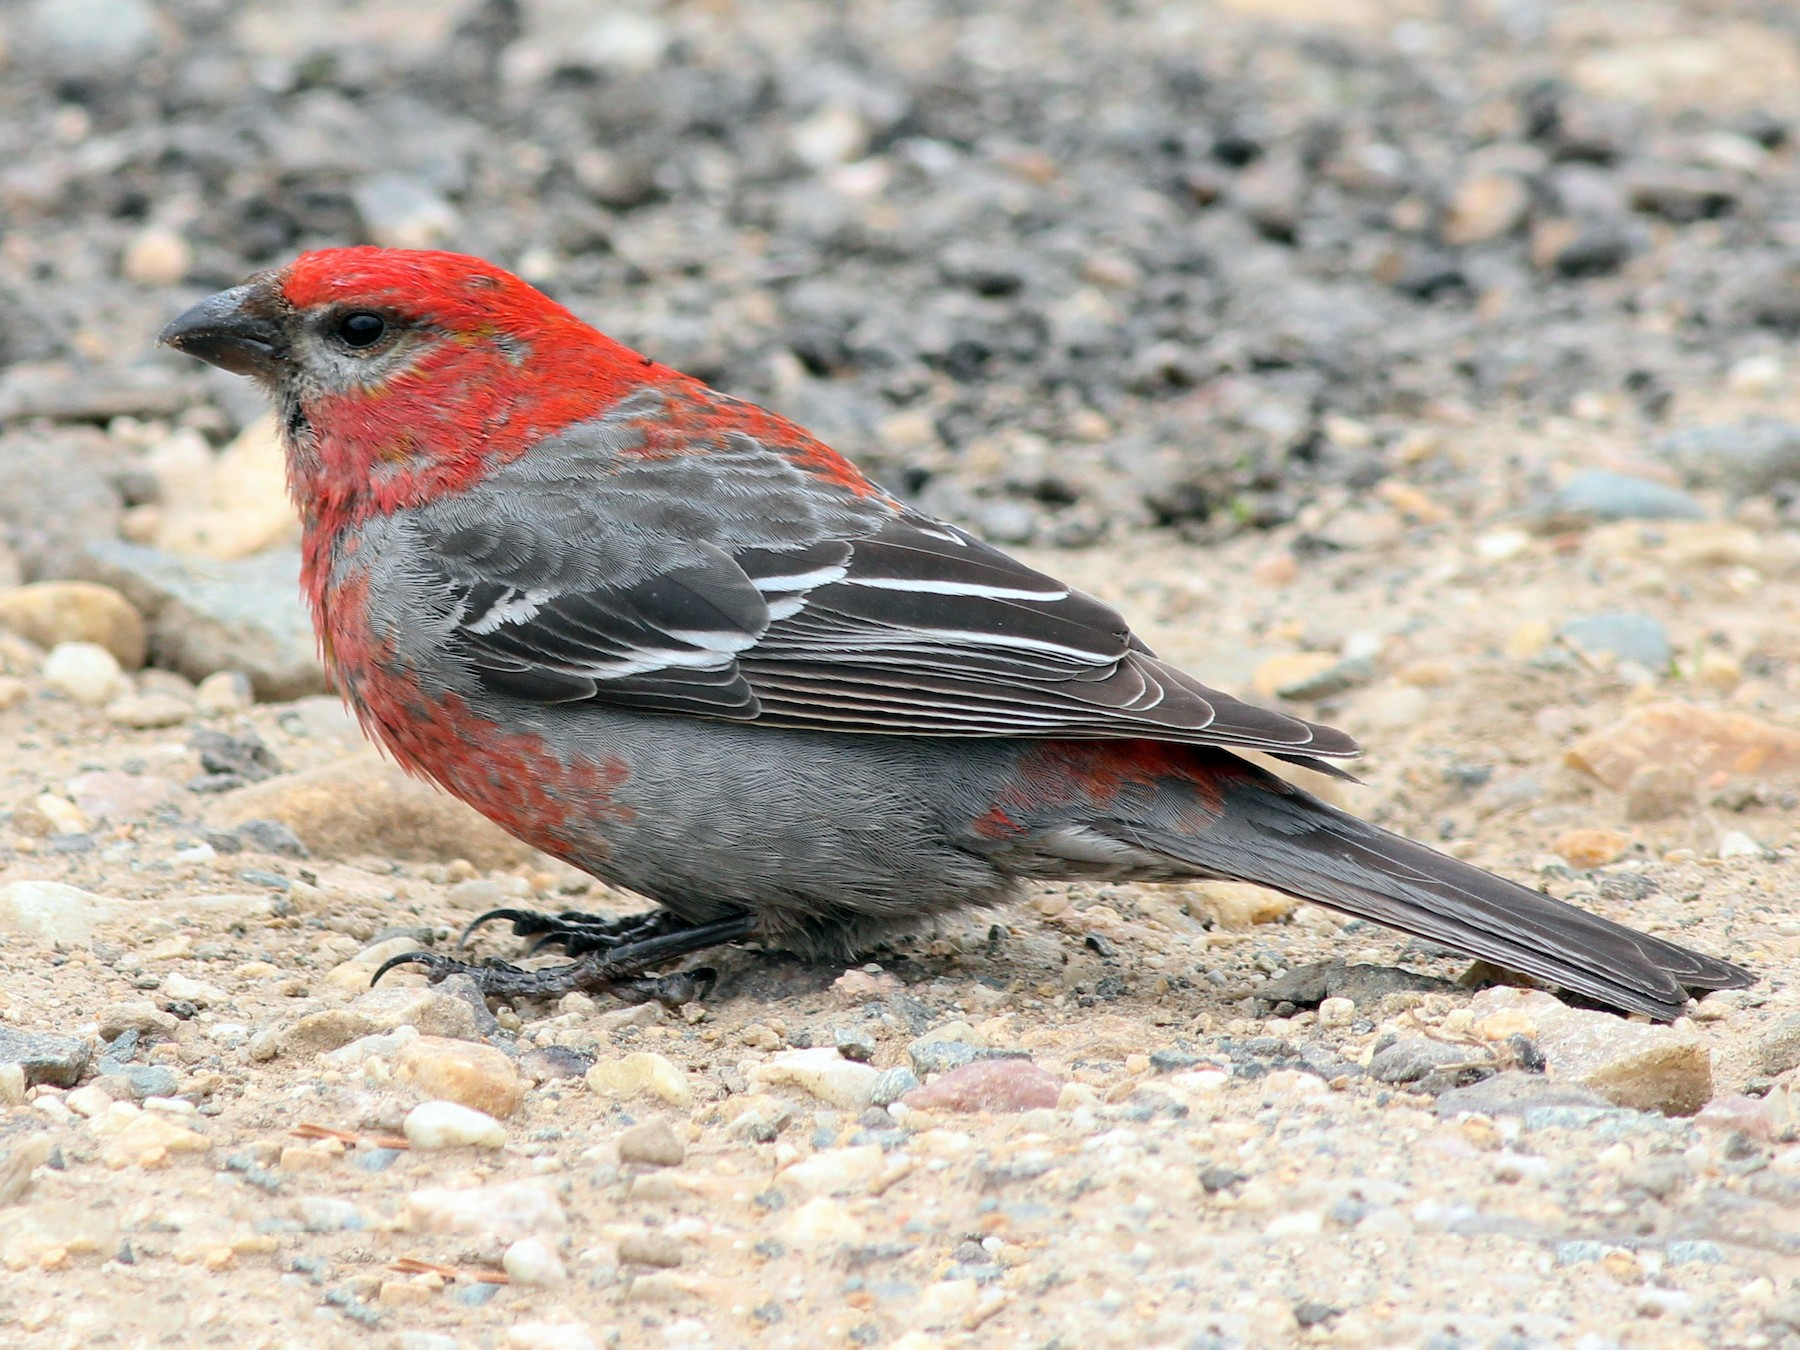 Pine Grosbeak - Shawn Billerman